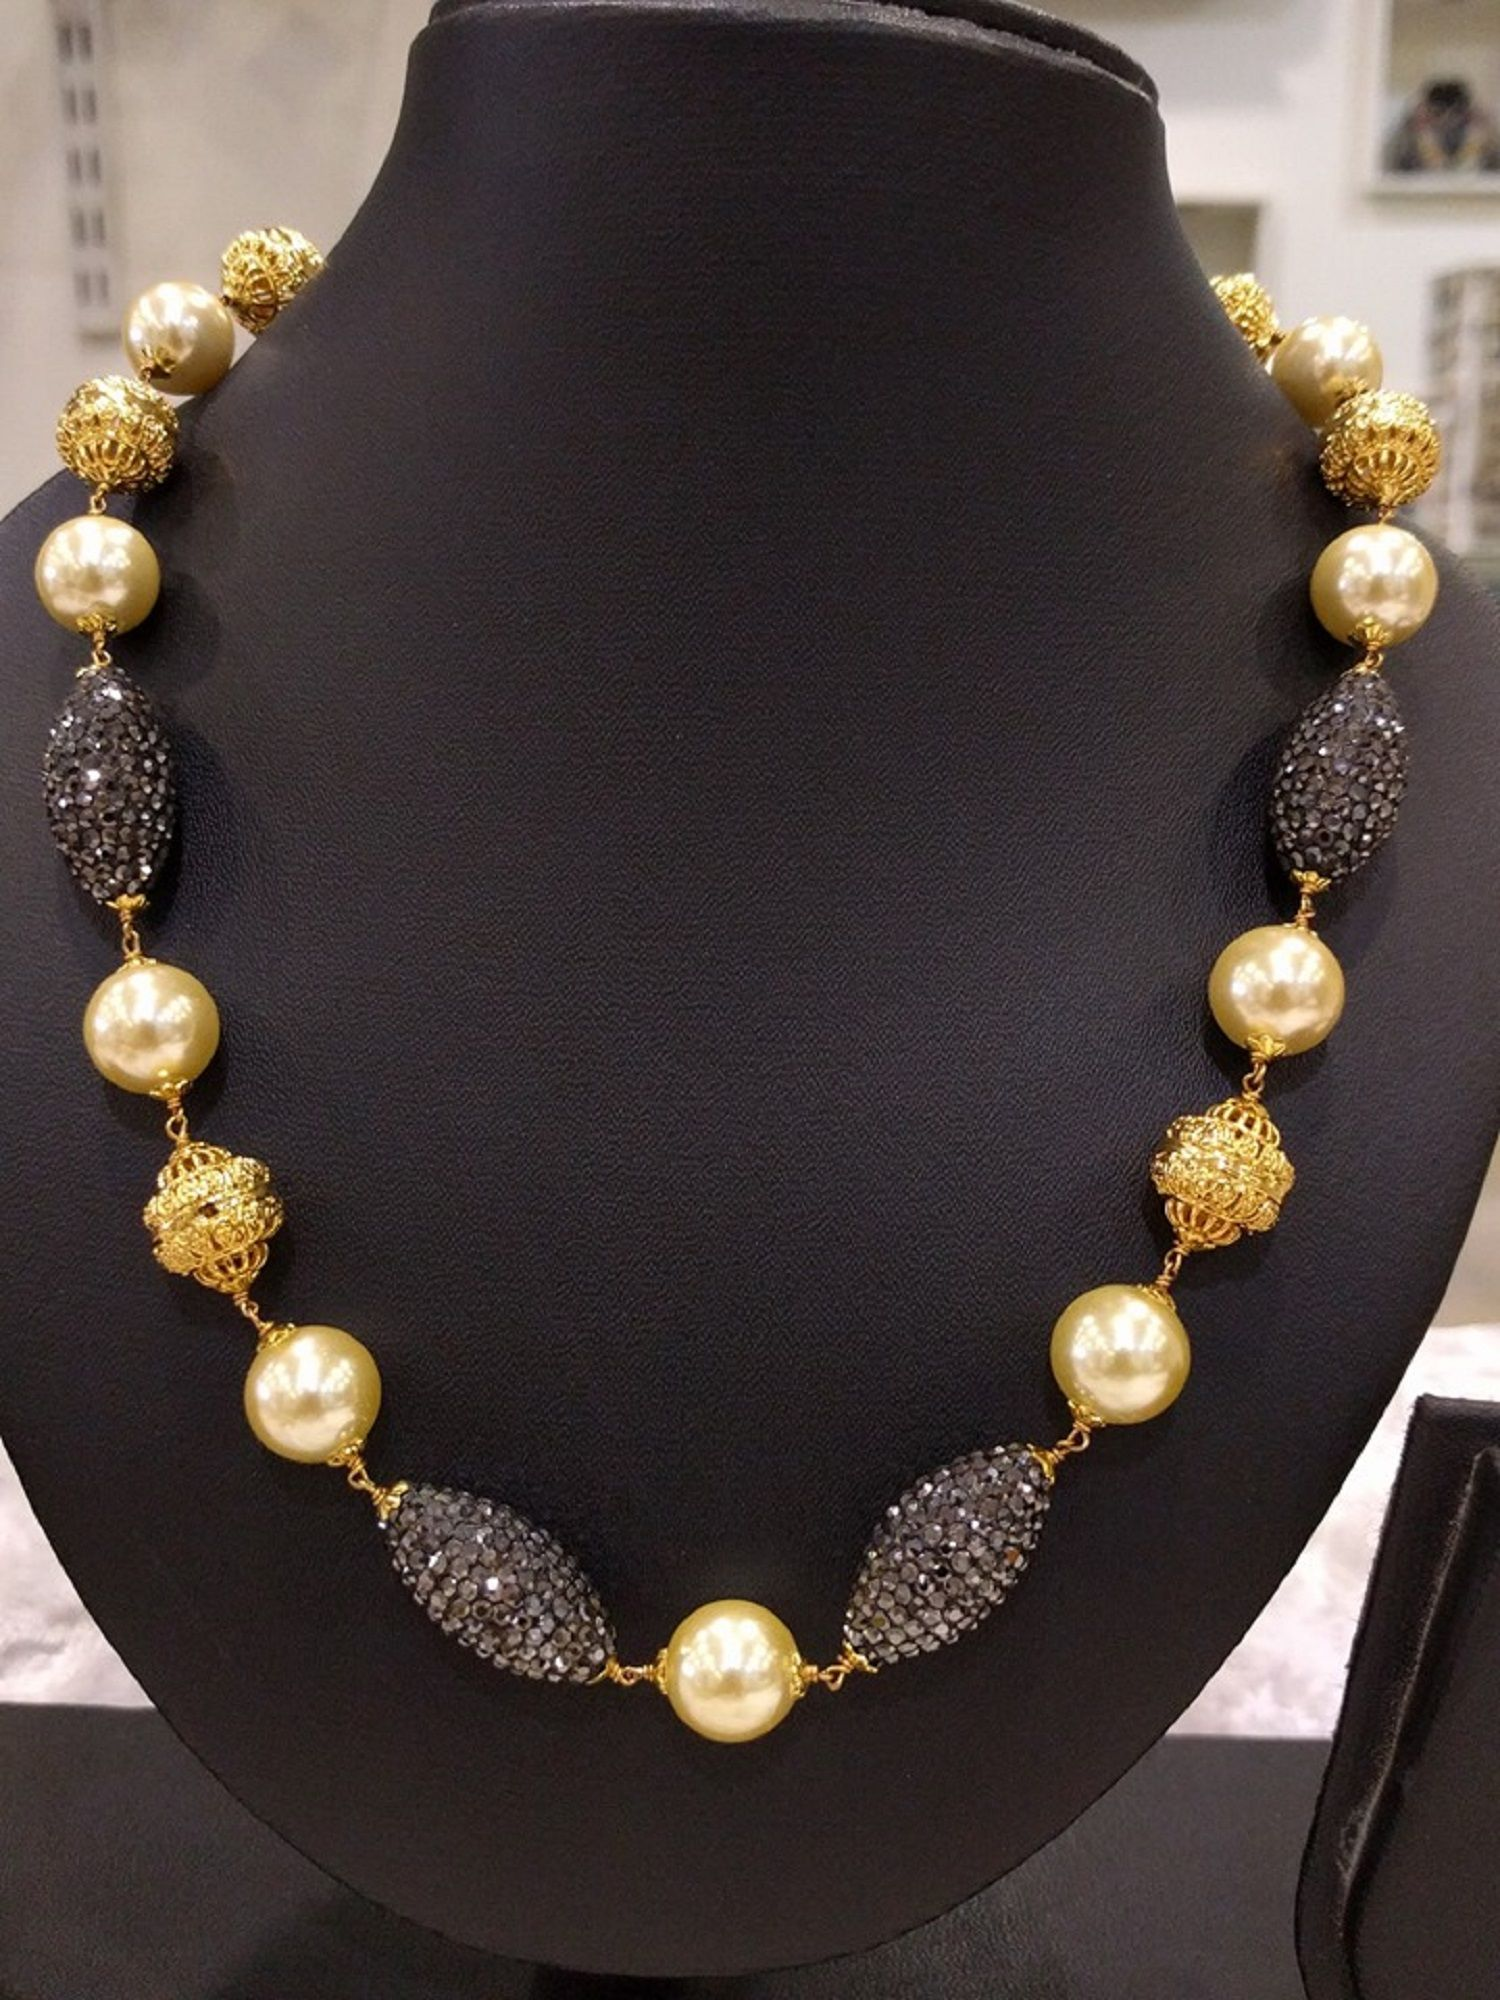 Simple & Beautiful Beads Necklace with Pearls (1gm Gold